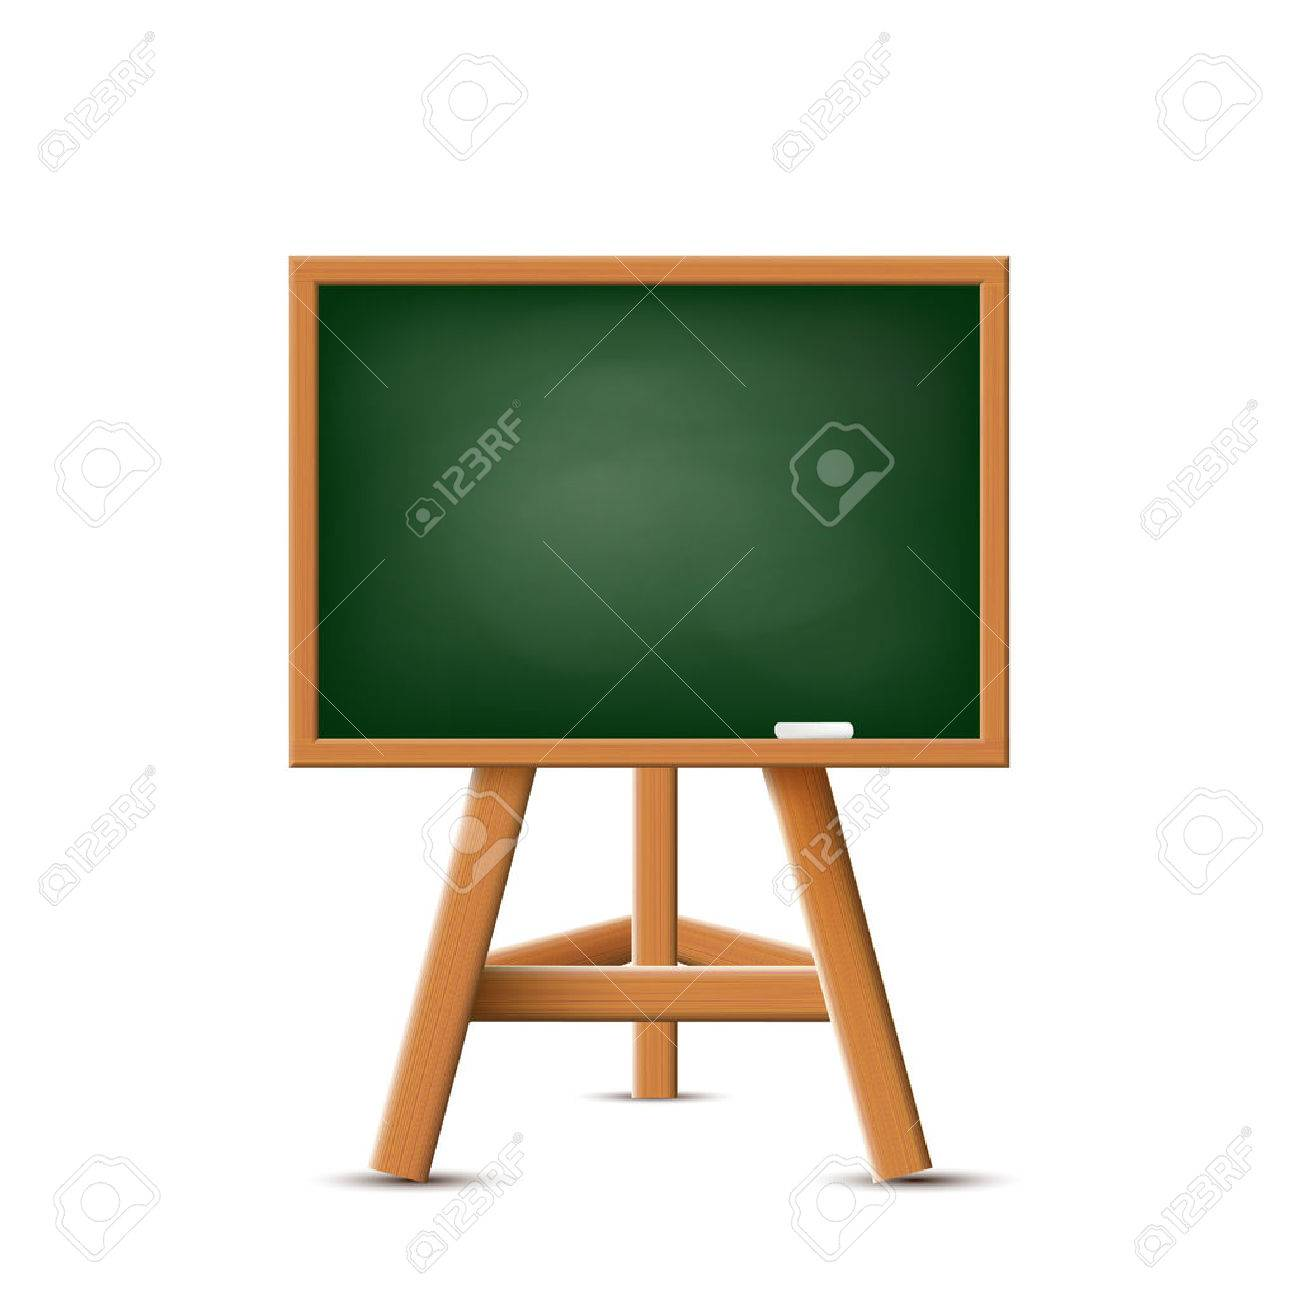 School board isolated on a white background. Stock Vector. - 40912868